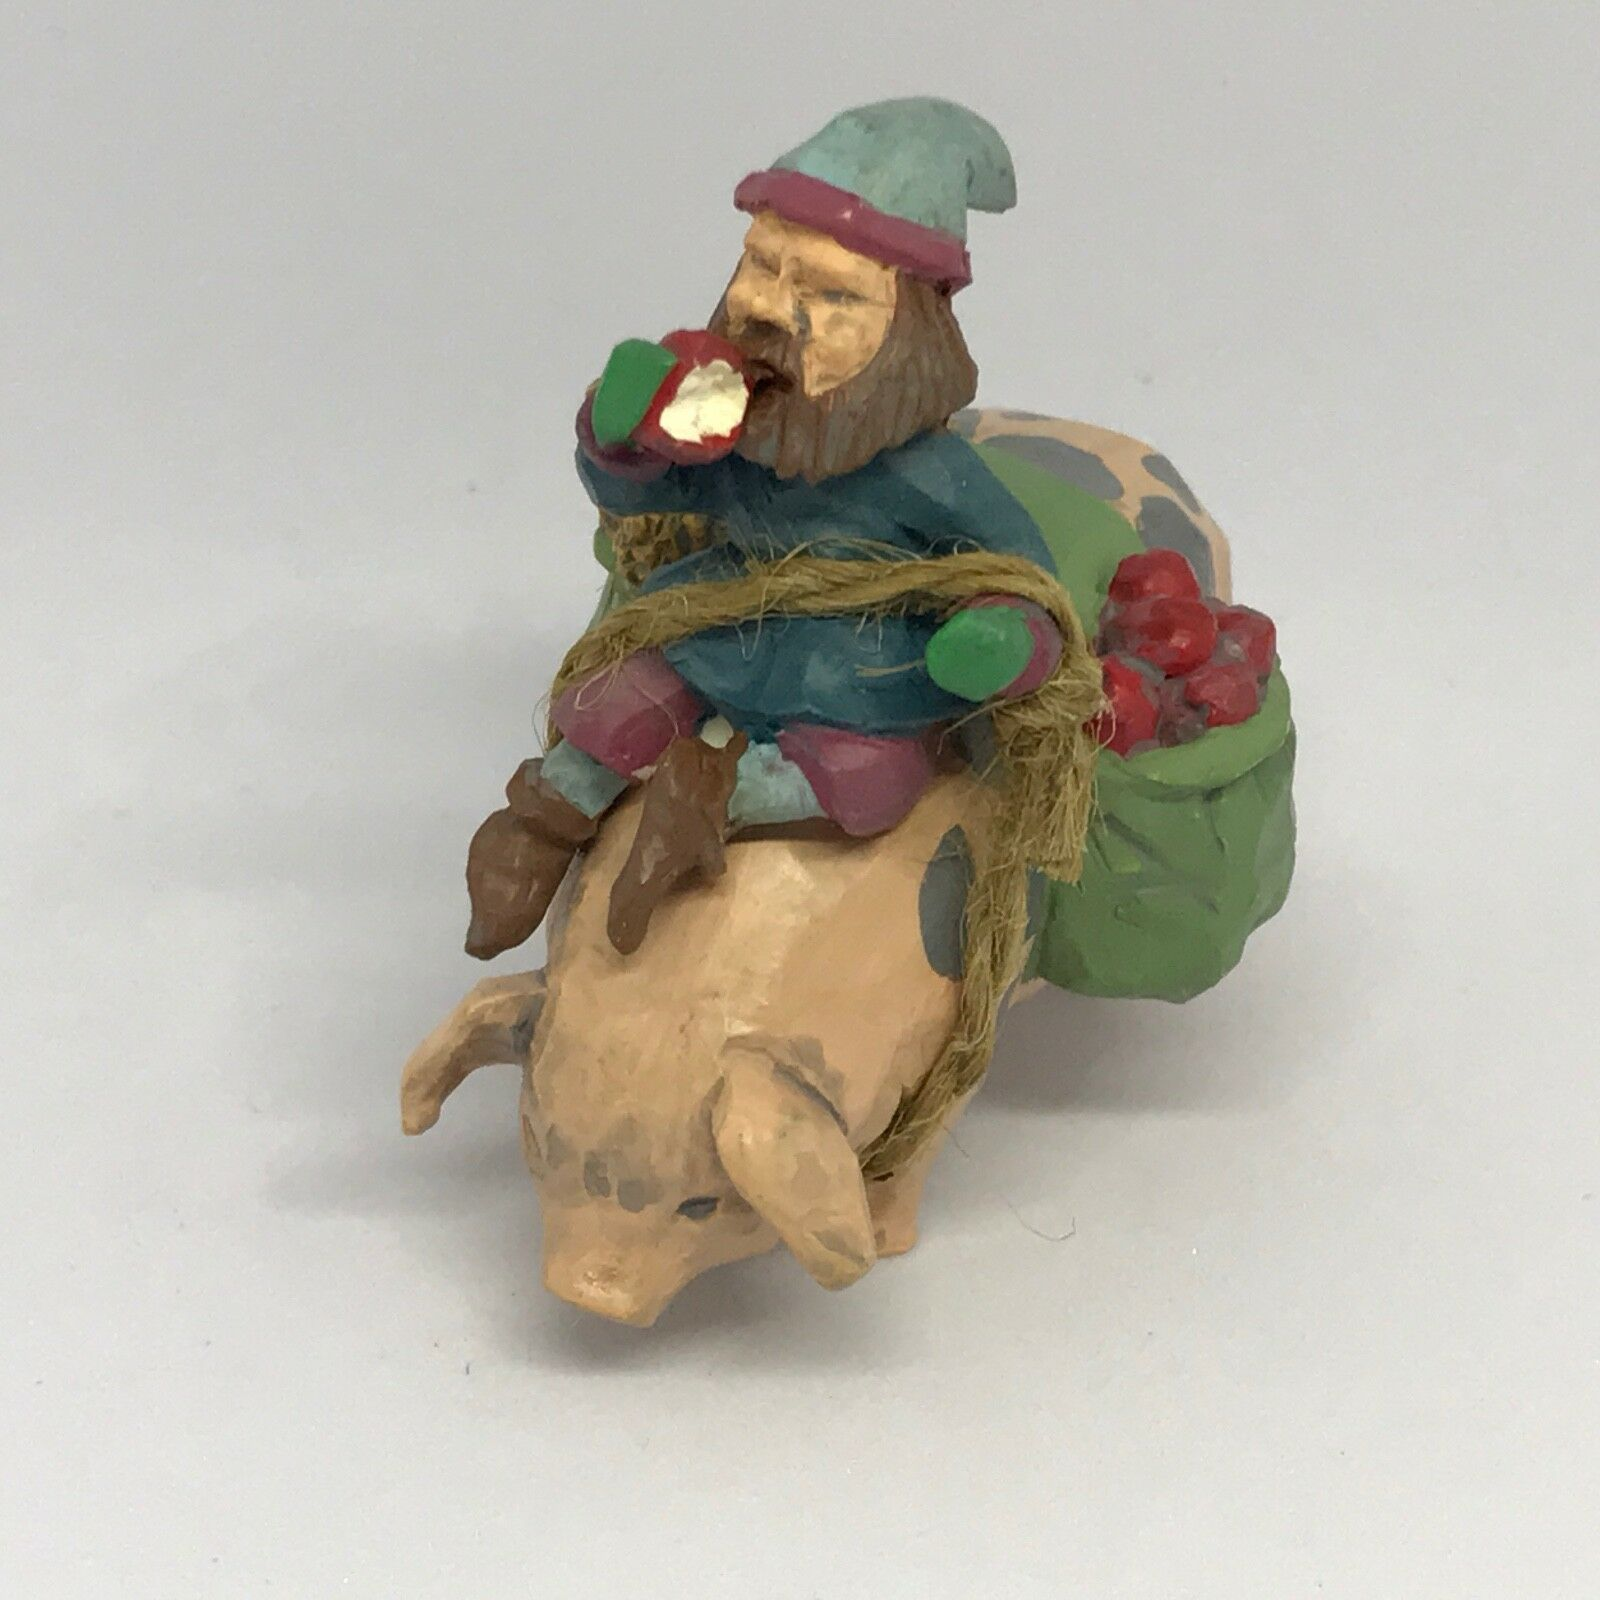 1994 Folk Art, Going to Town - Elf riding on Pig